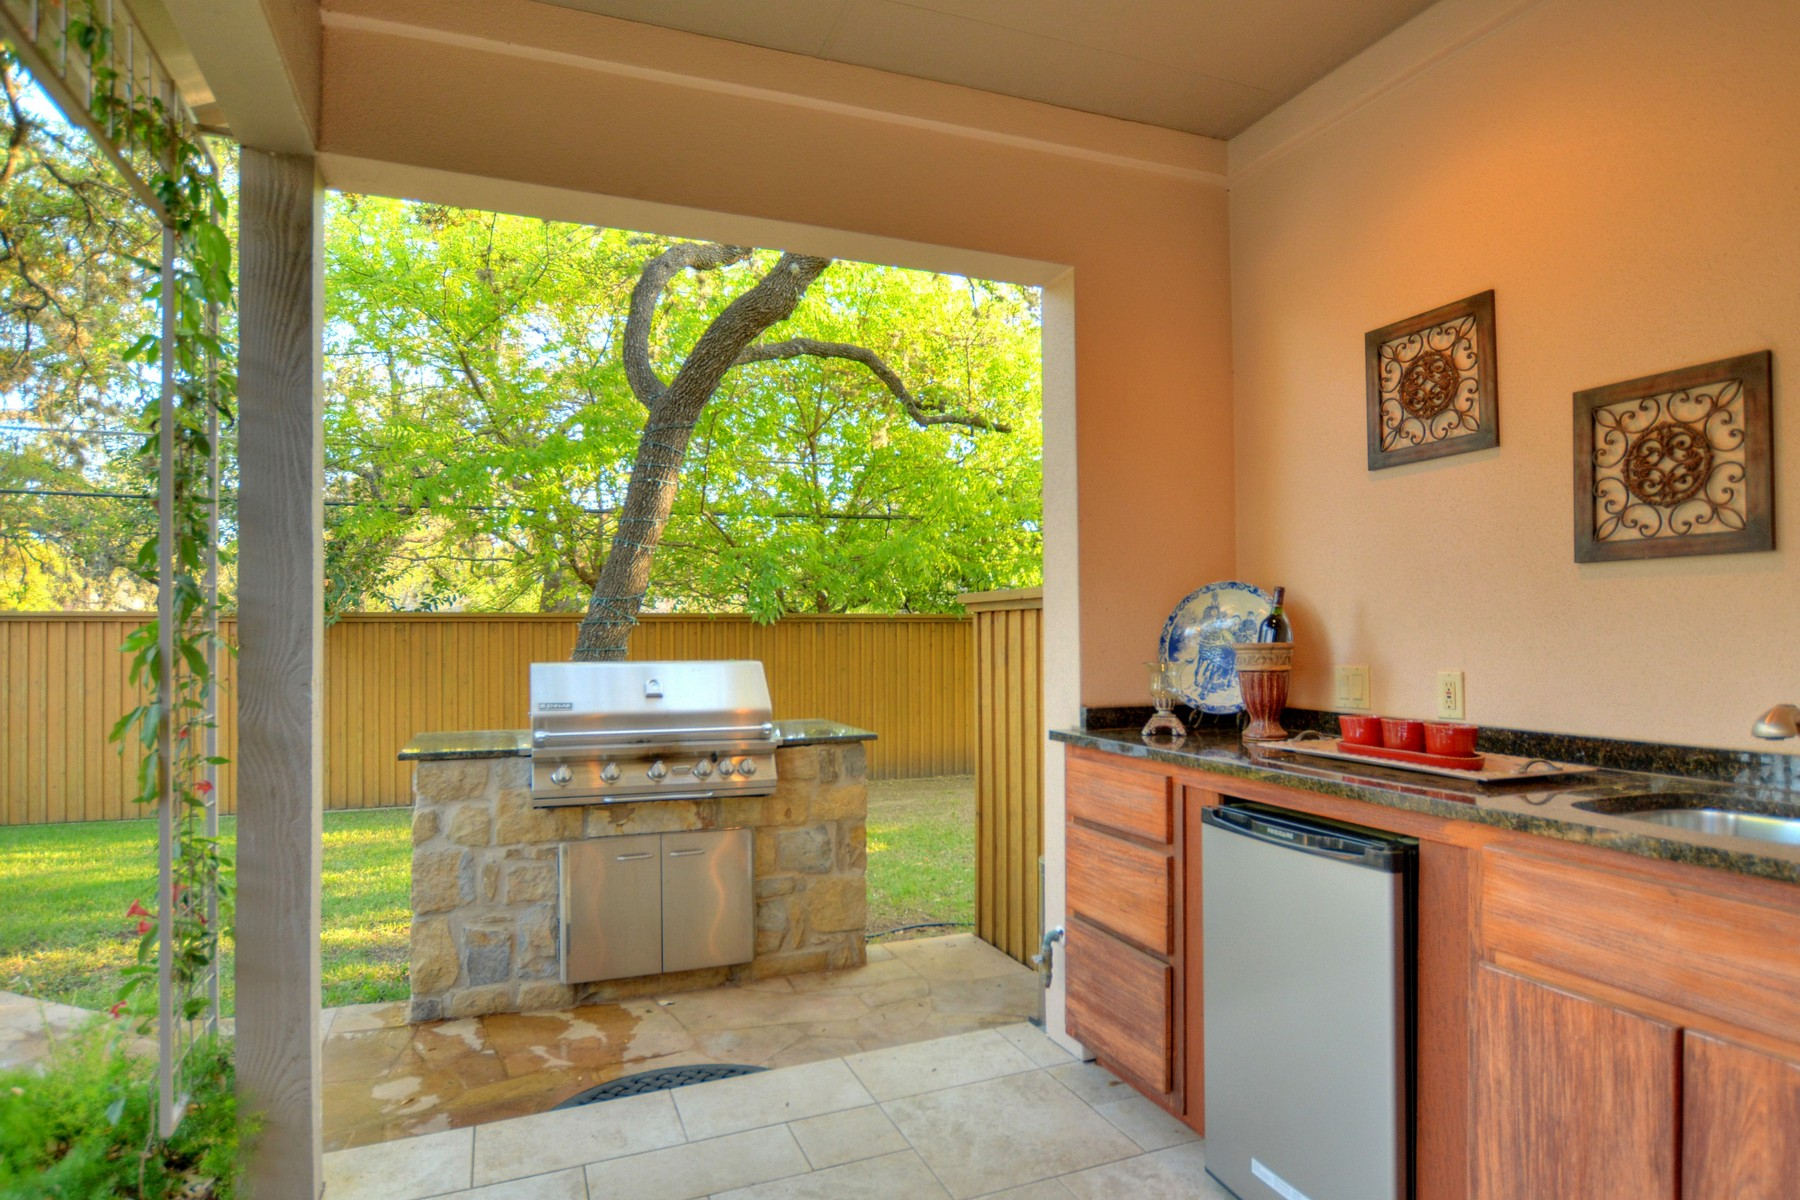 Additional photo for property listing at Award Winning Remodel Down to the Studs! 4509 Small Dr Austin, Texas 78731 United States